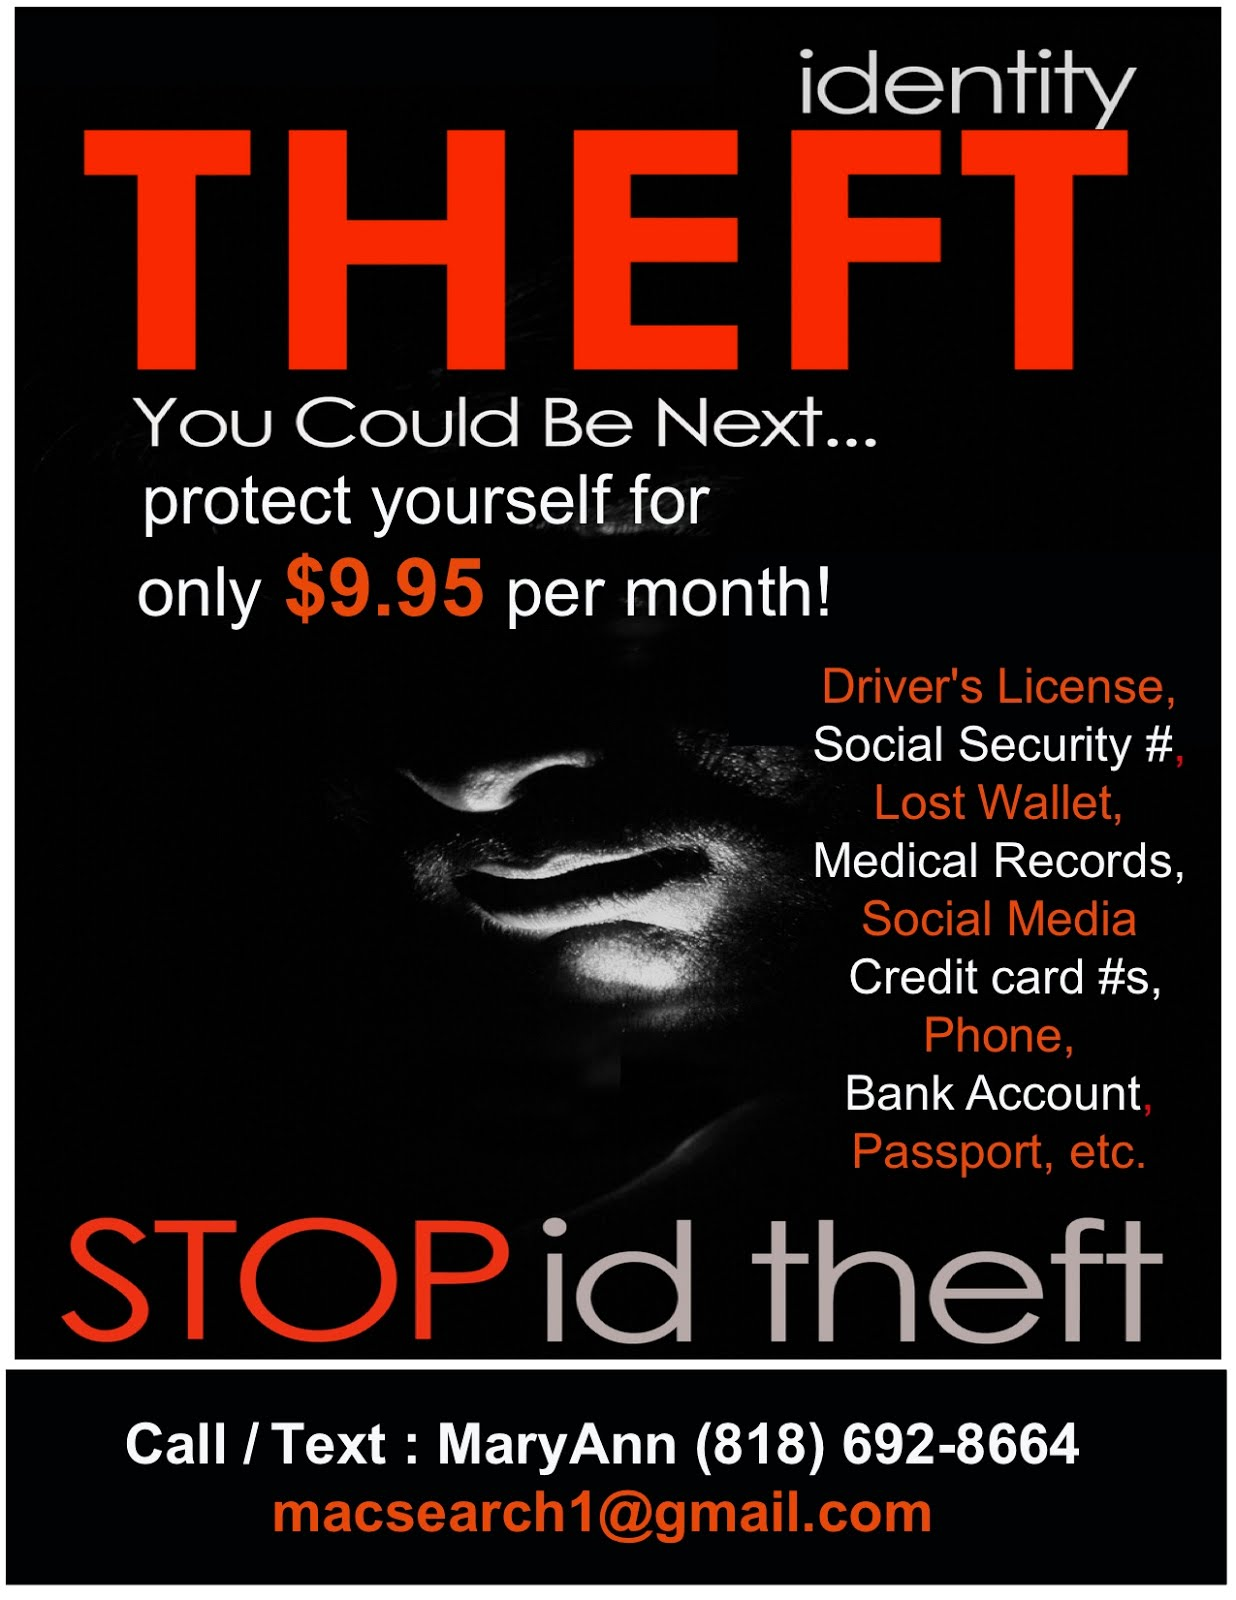 Identity theft is on the rise!